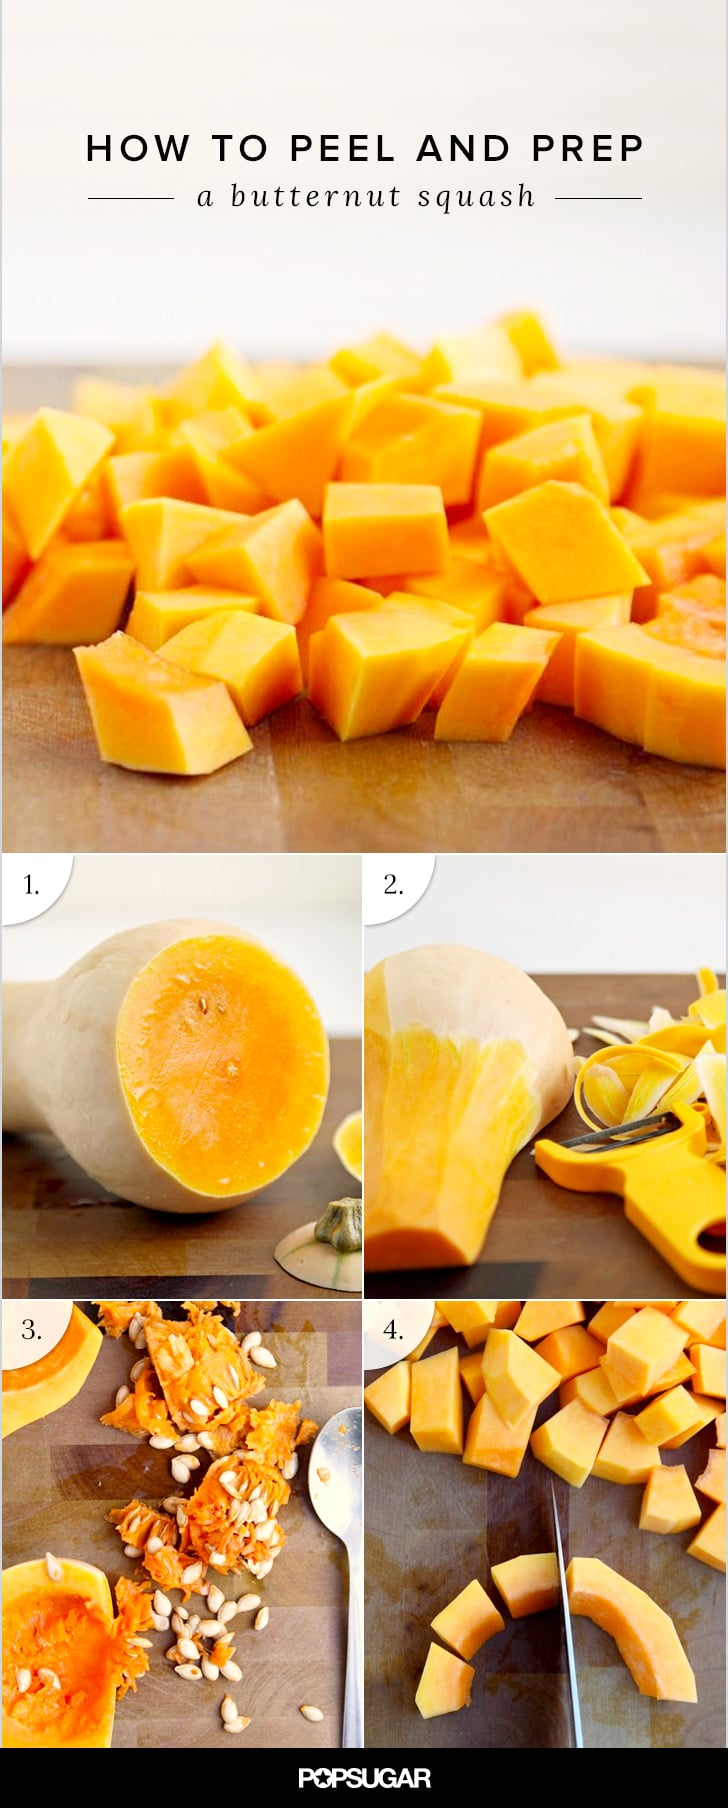 How to Peel and Prep a Butternut Squash, Accident-Free